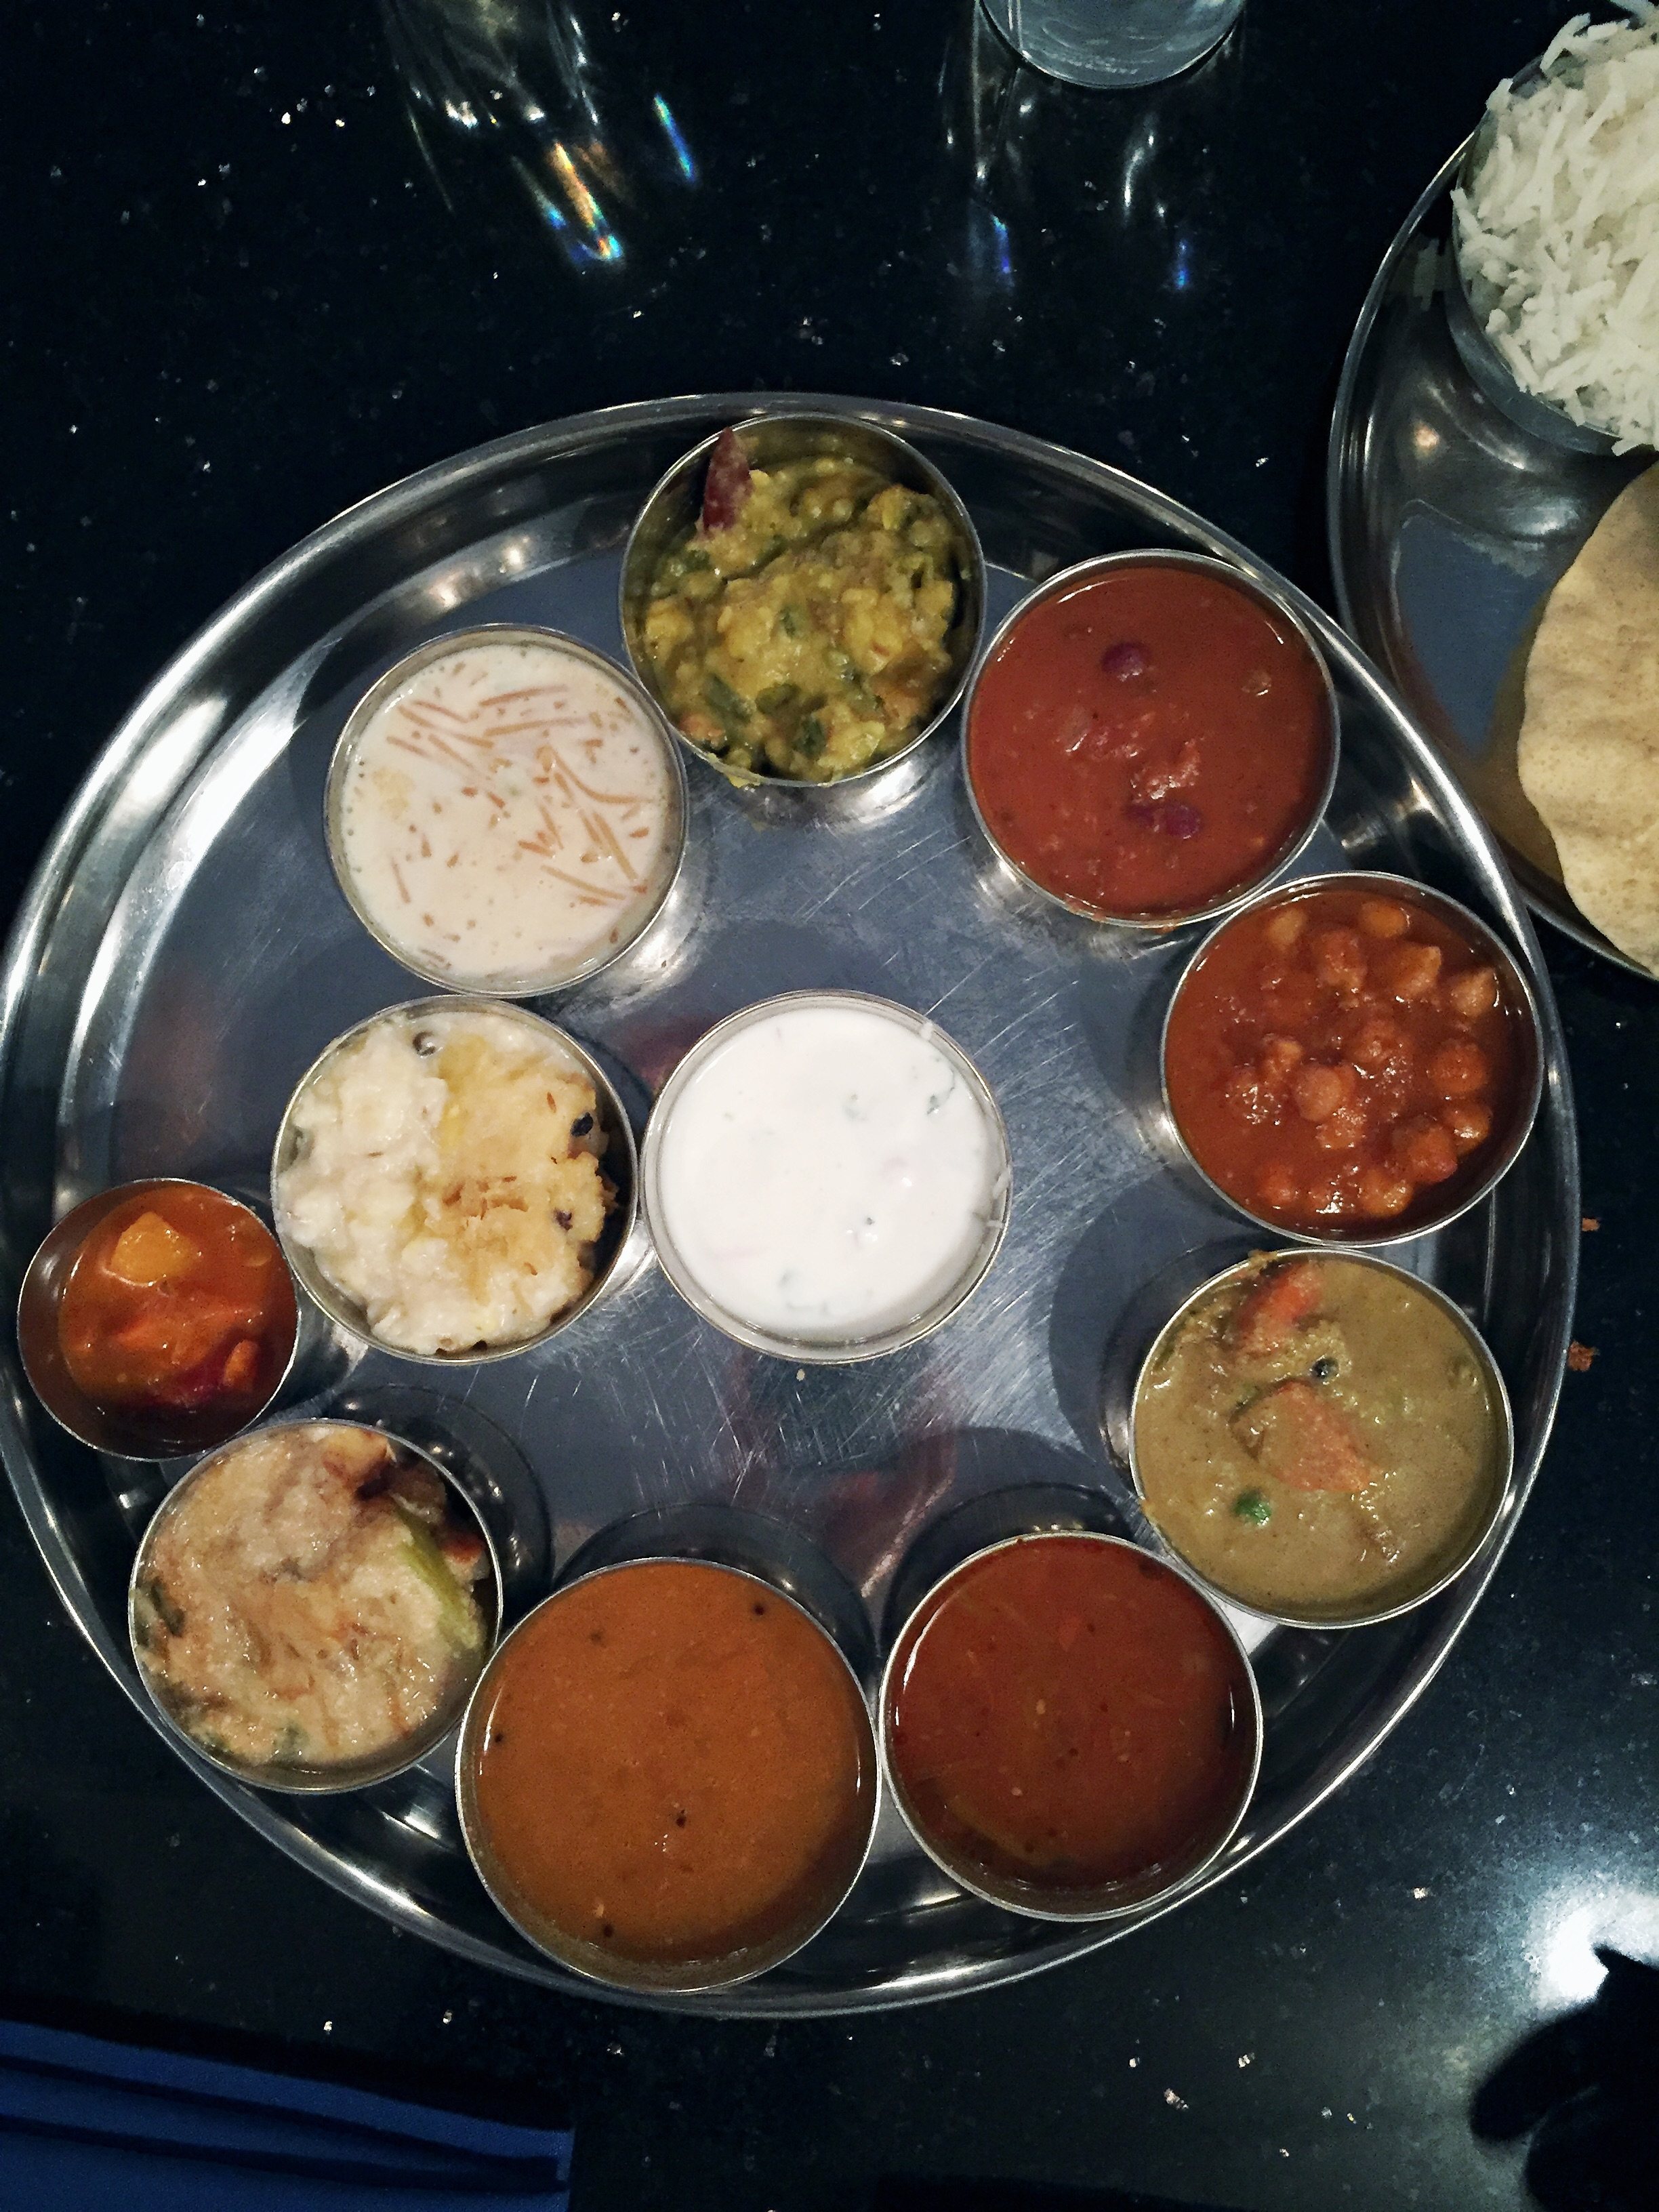 Udupi Place Thali. The lower quality my photos are, the more delicious the food because I'm anxious to eat.